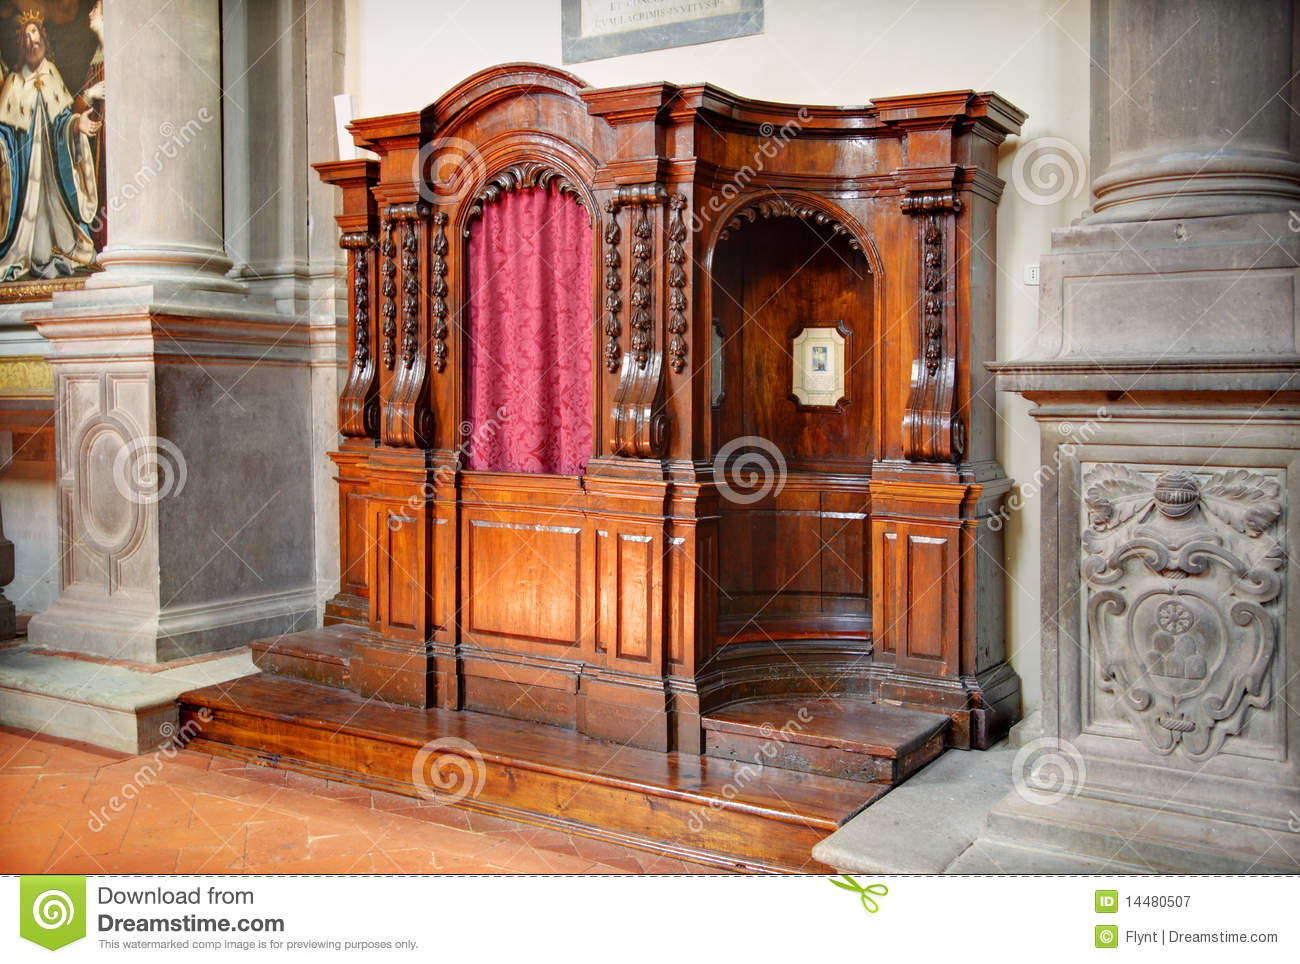 Confession Box Royalty Free Stock Photography - Image: 14480507